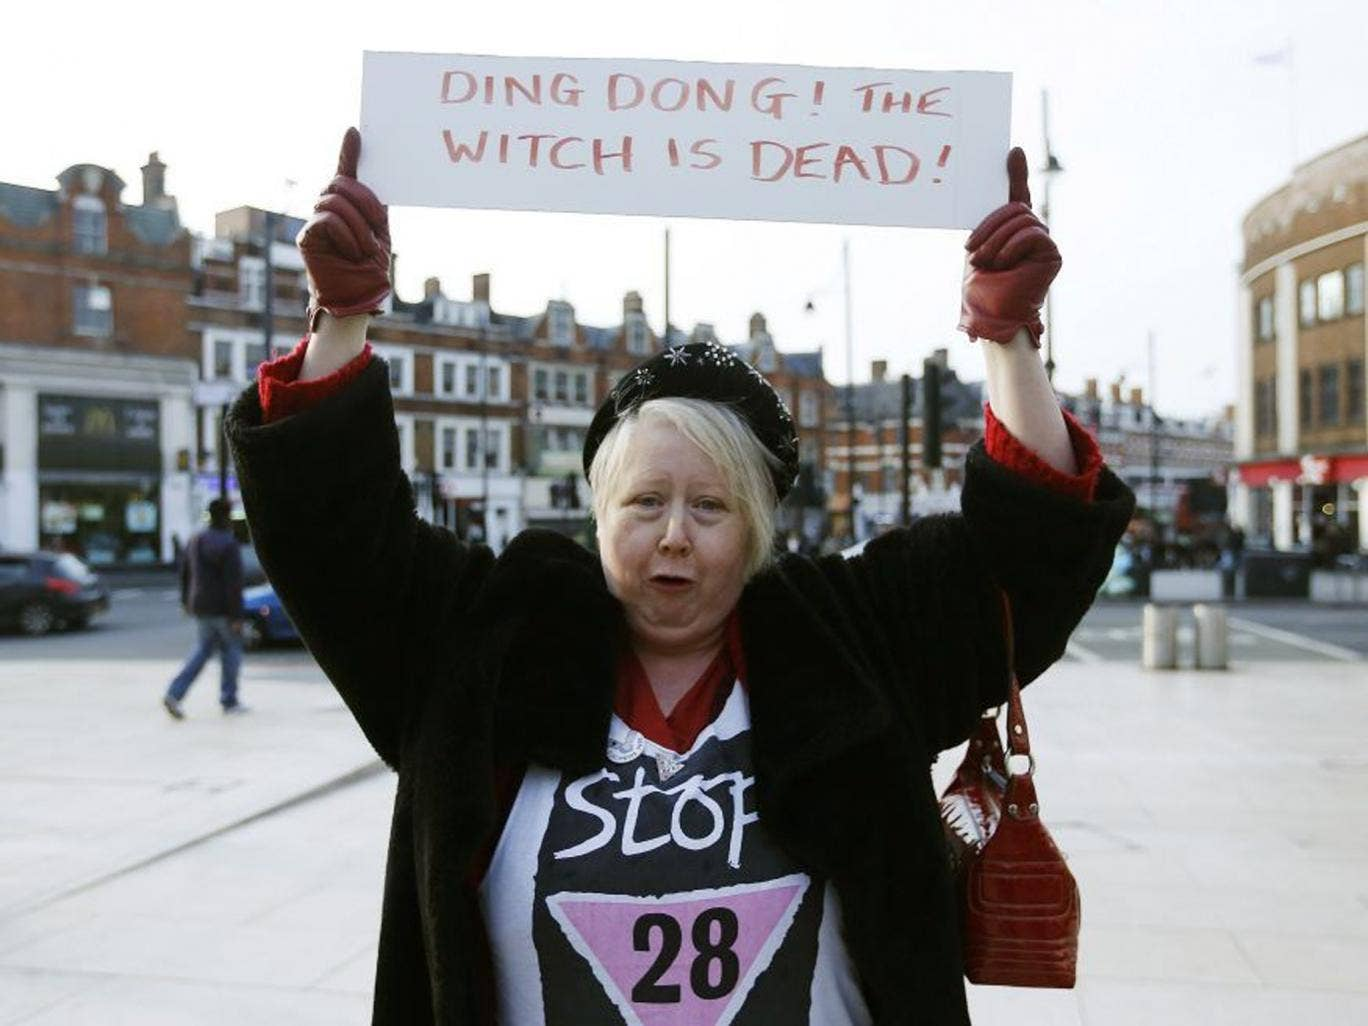 A reveller holds a sign to celebrate the death of Britain's former prime minister Margaret Thatcher